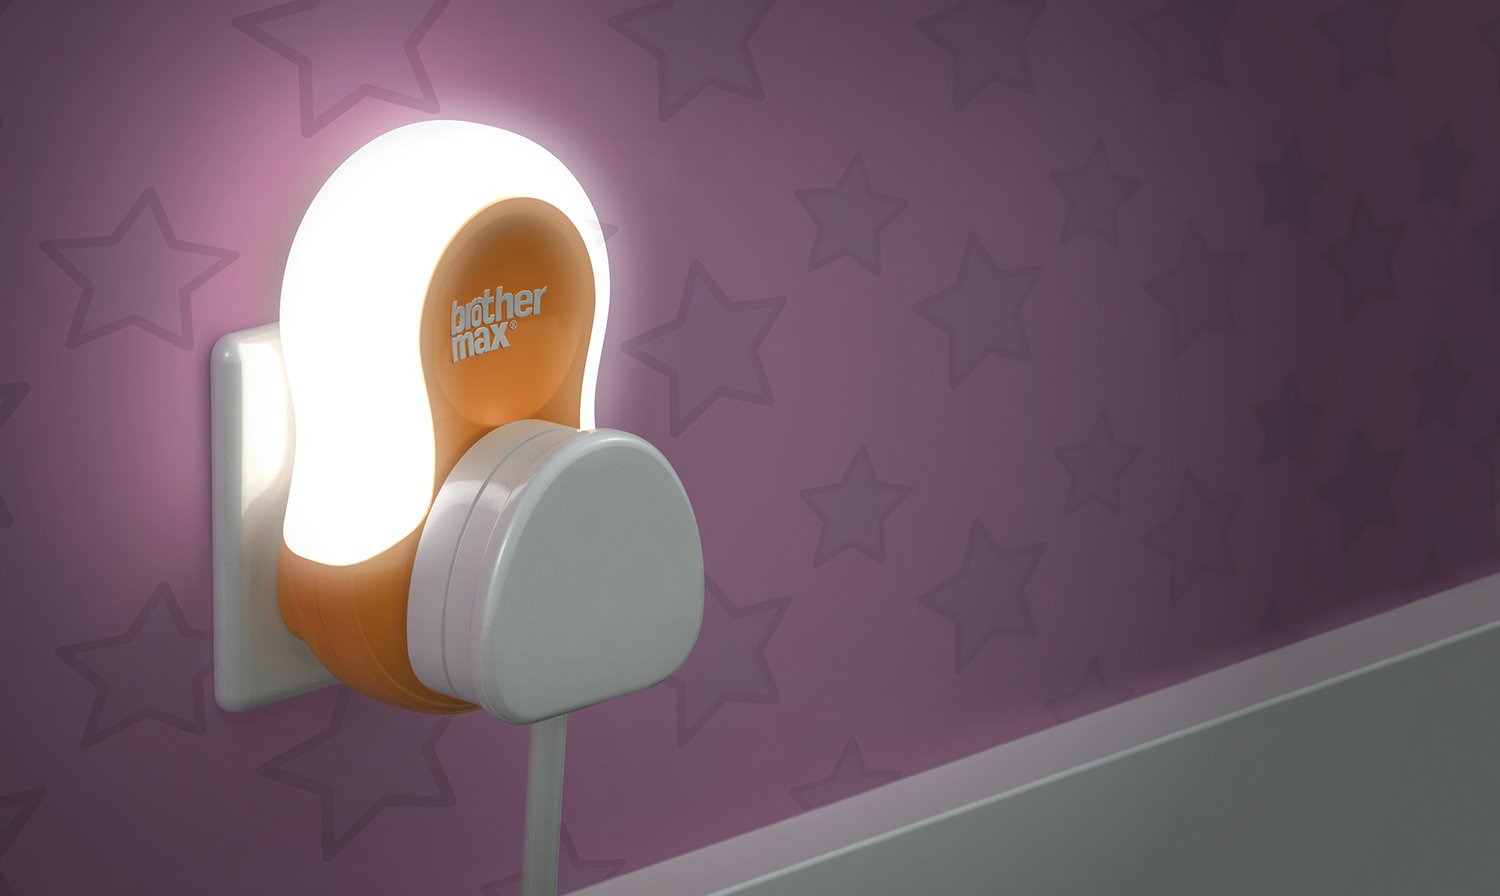 Image of Brother Max Plug in Nightlight